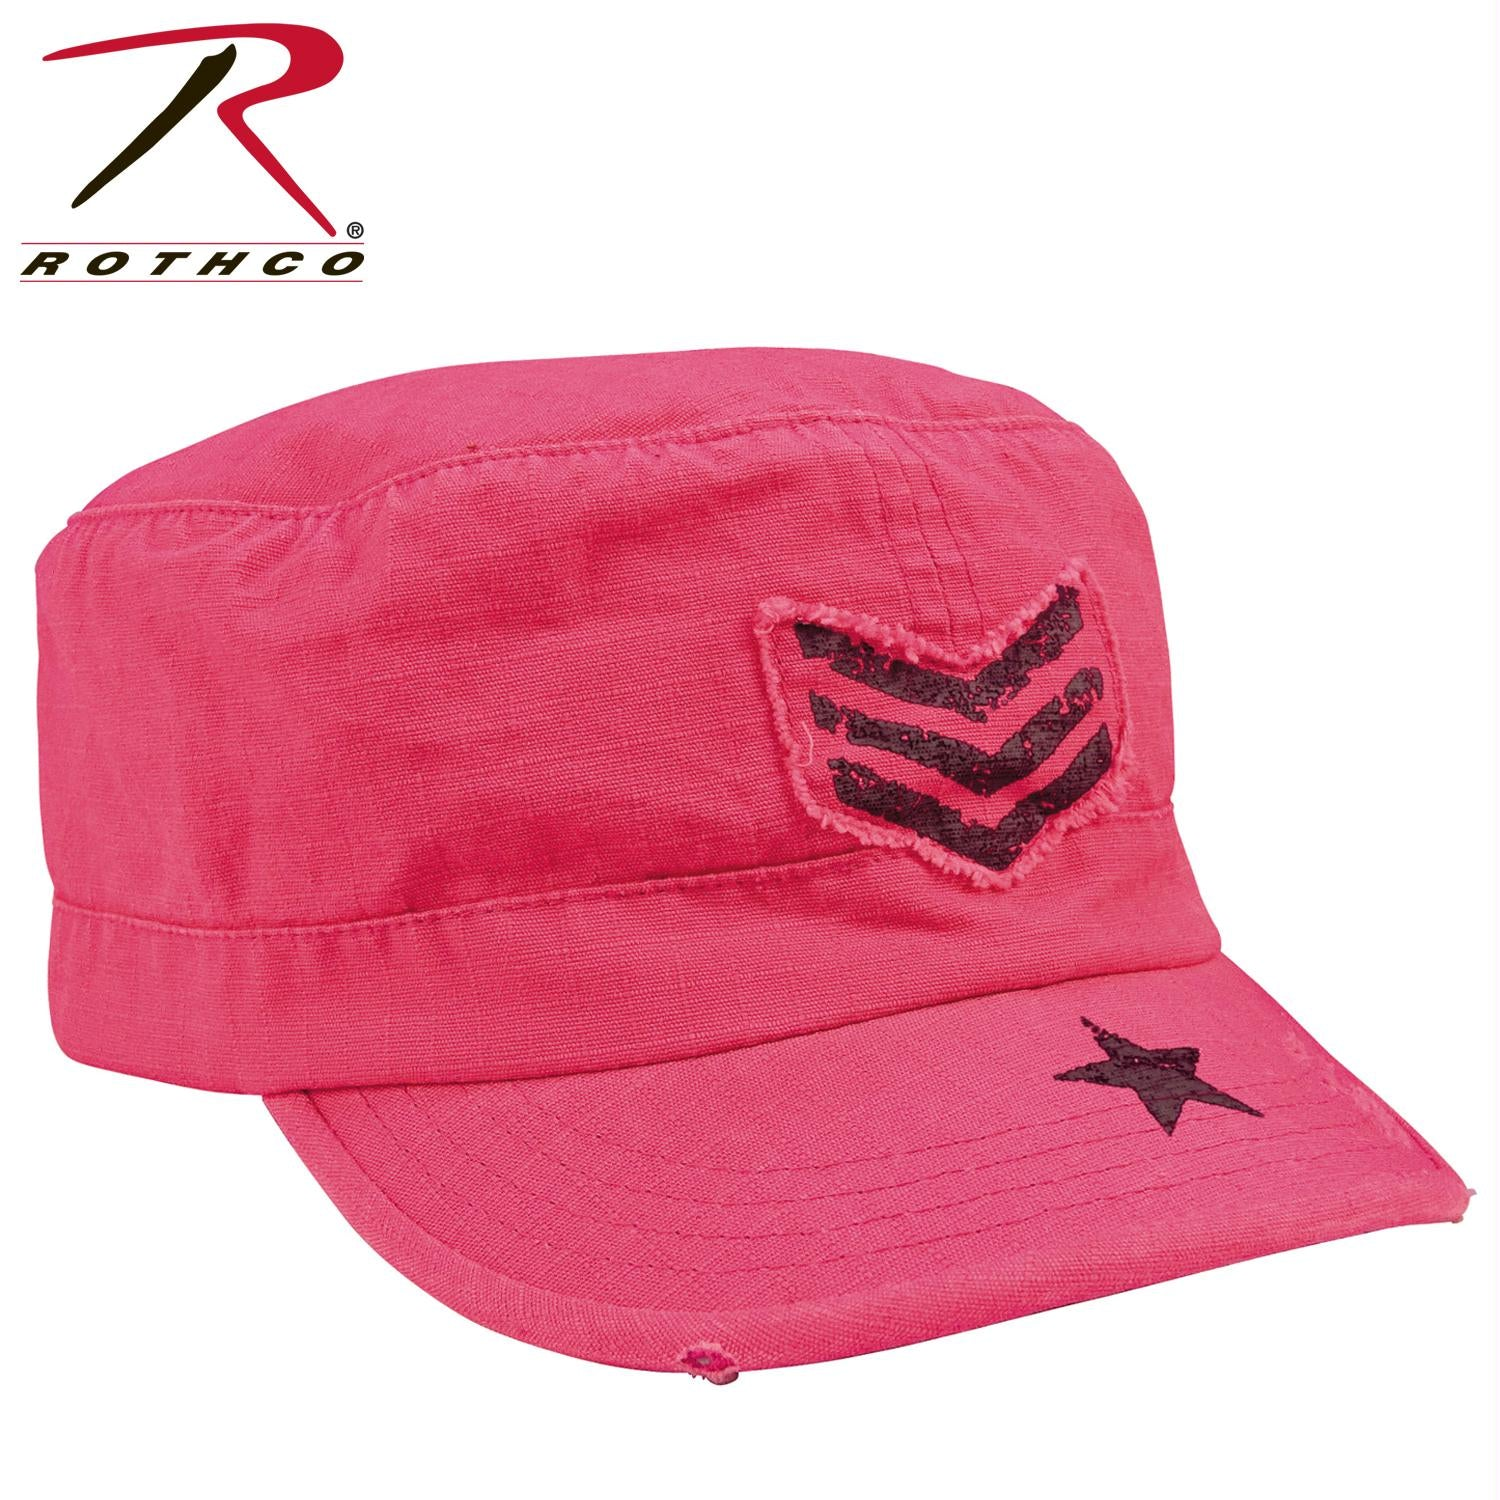 Rothco Women's Vintage Stripes & Stars Adjustable Fatigues Cap - Pink